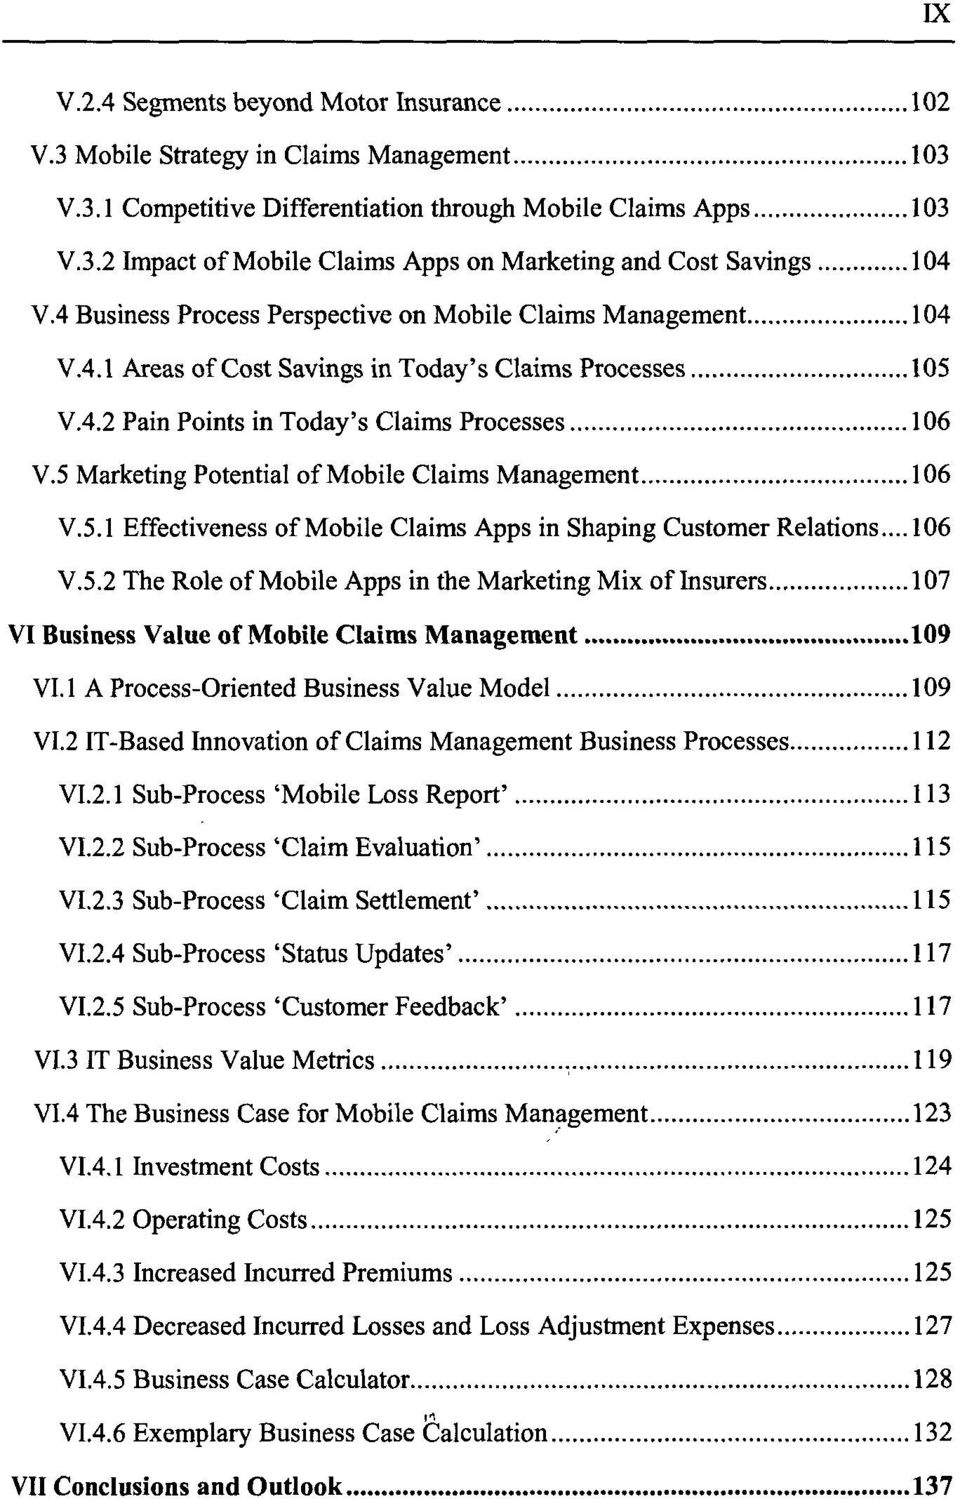 5 Marketing Potential of Mobile Claims Management 106 V.5.1 Effectiveness of Mobile Claims Apps in Shaping Customer Relations... 106 V.5.2 The Role of Mobile Apps in the Marketing Mix of Insurers 107 VI Business Value of Mobile Claims Management 109 VI.